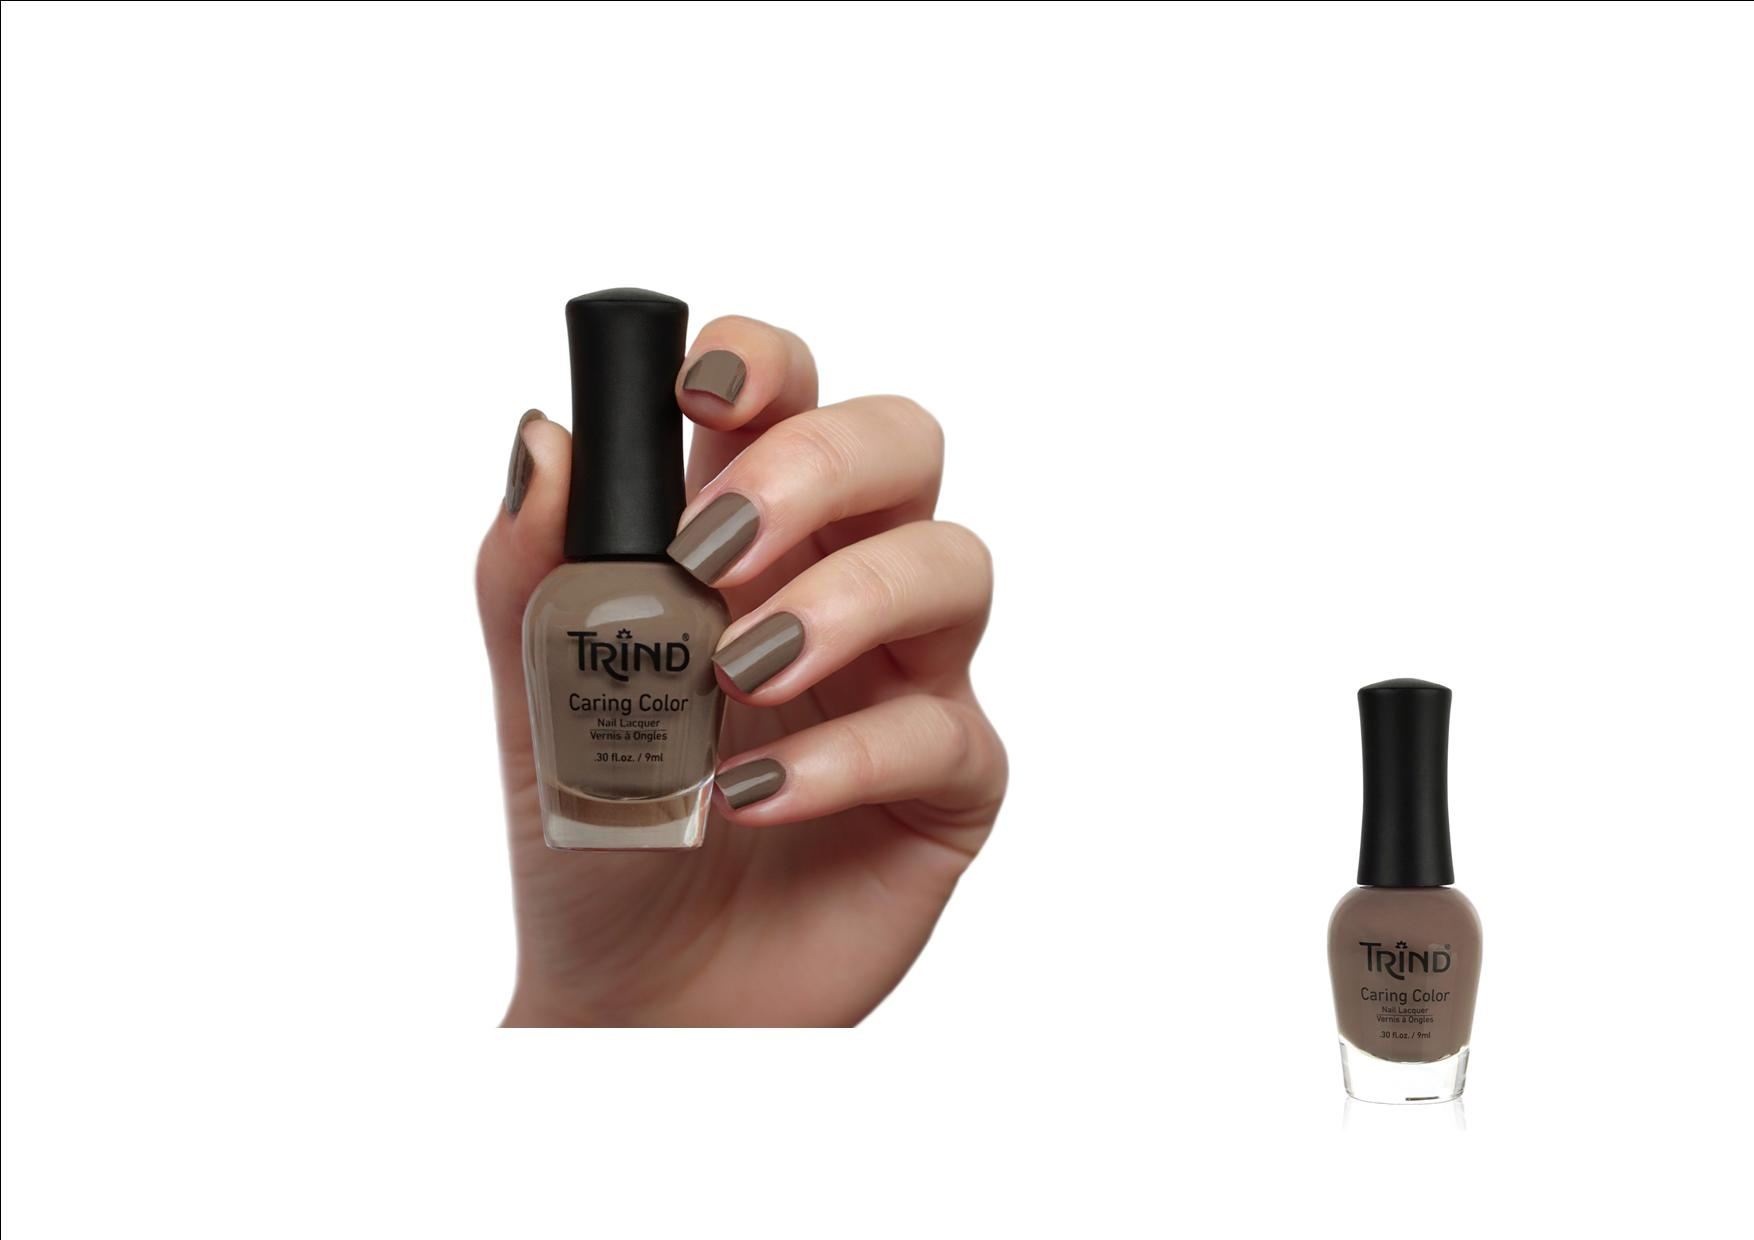 Trind Caring Color Nagellak 291 Moccachino